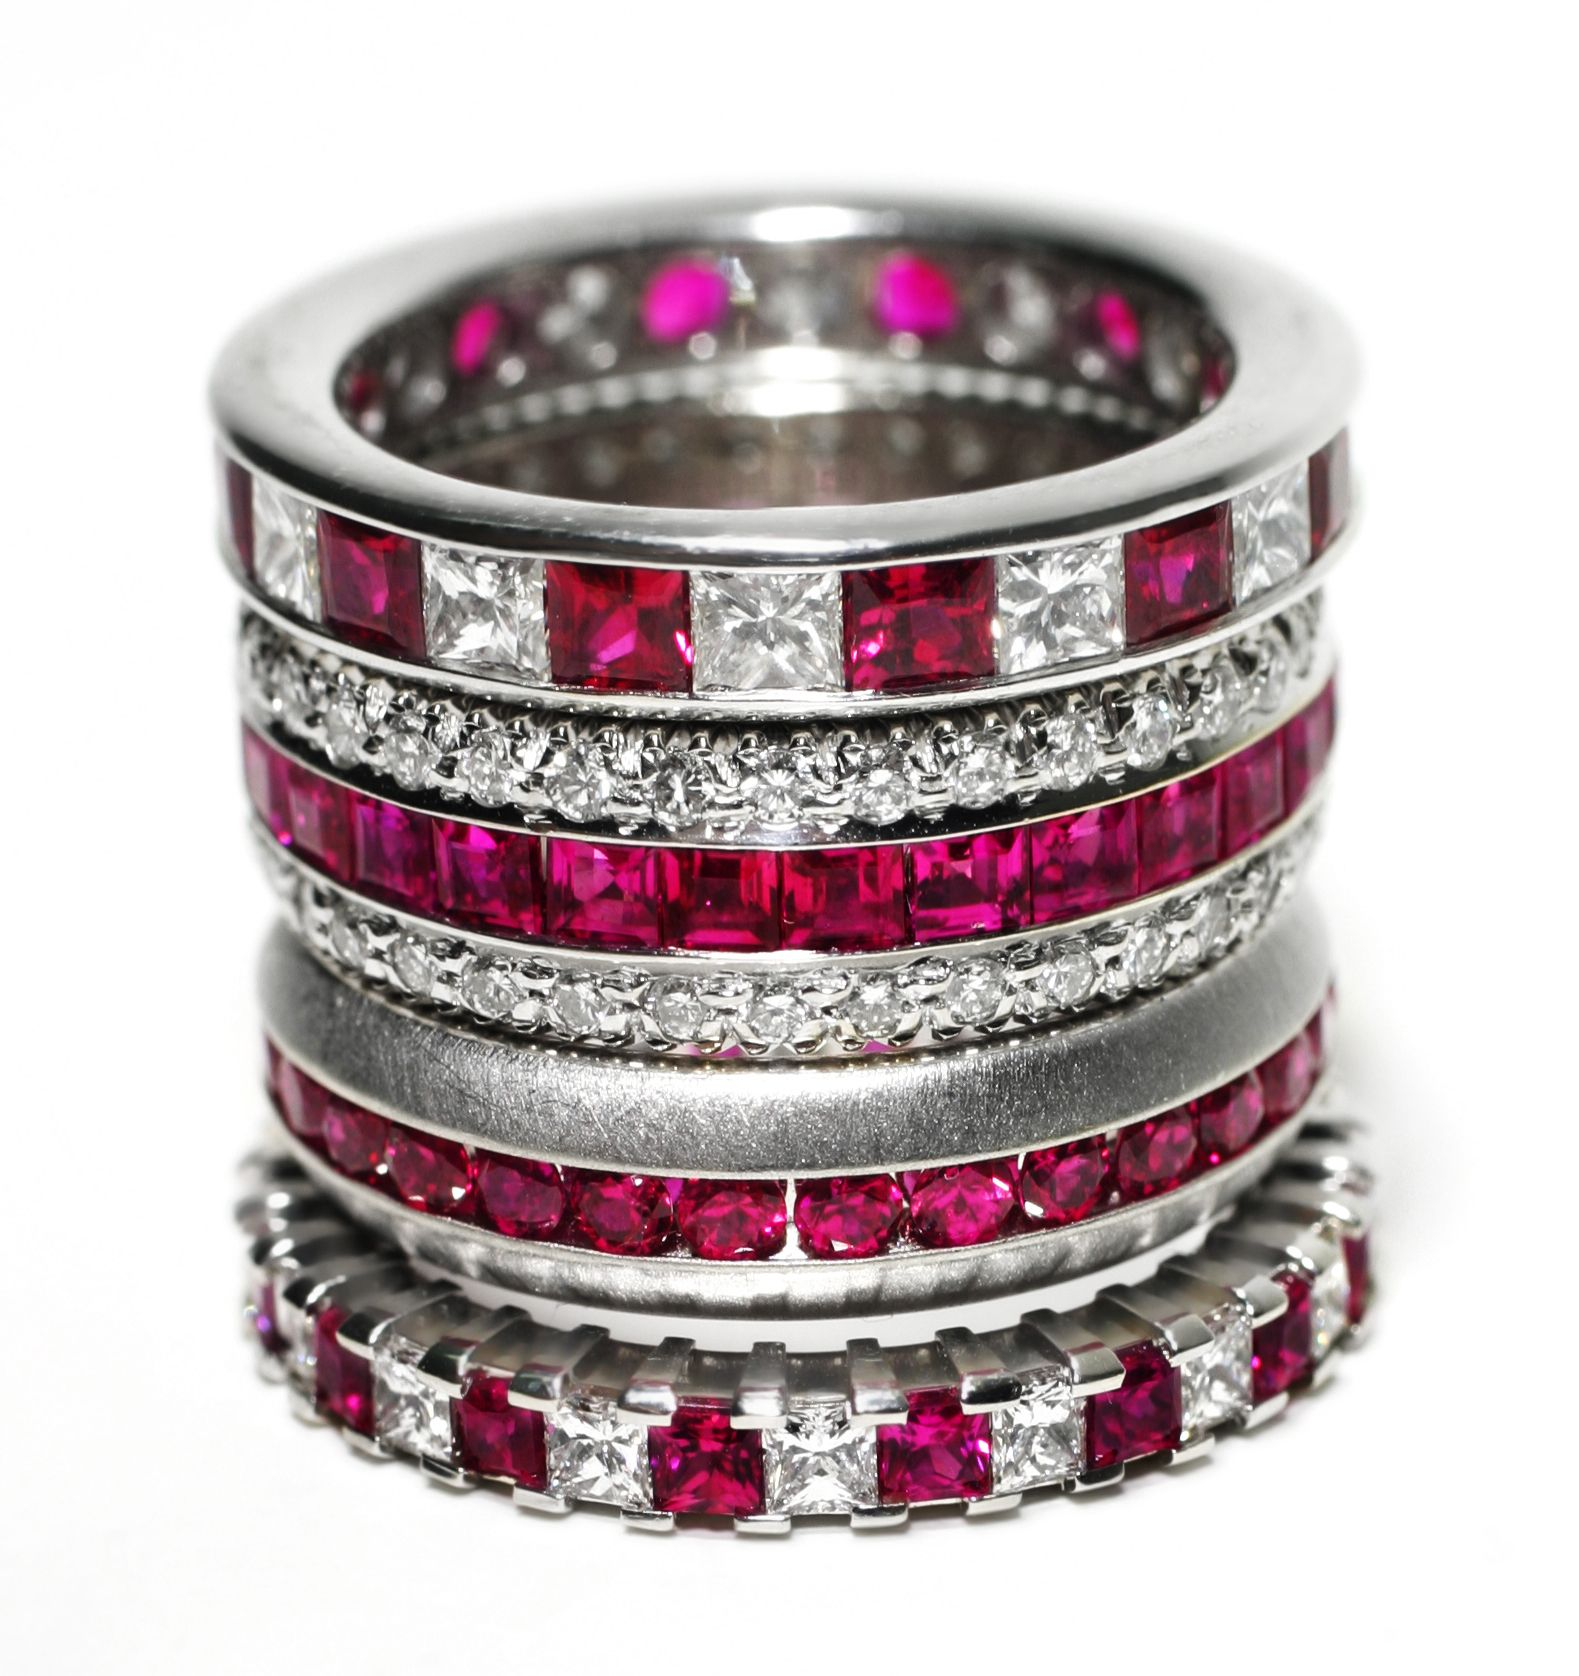 Ruby and diamond rings bejewel my heart pinterest diamond and ring